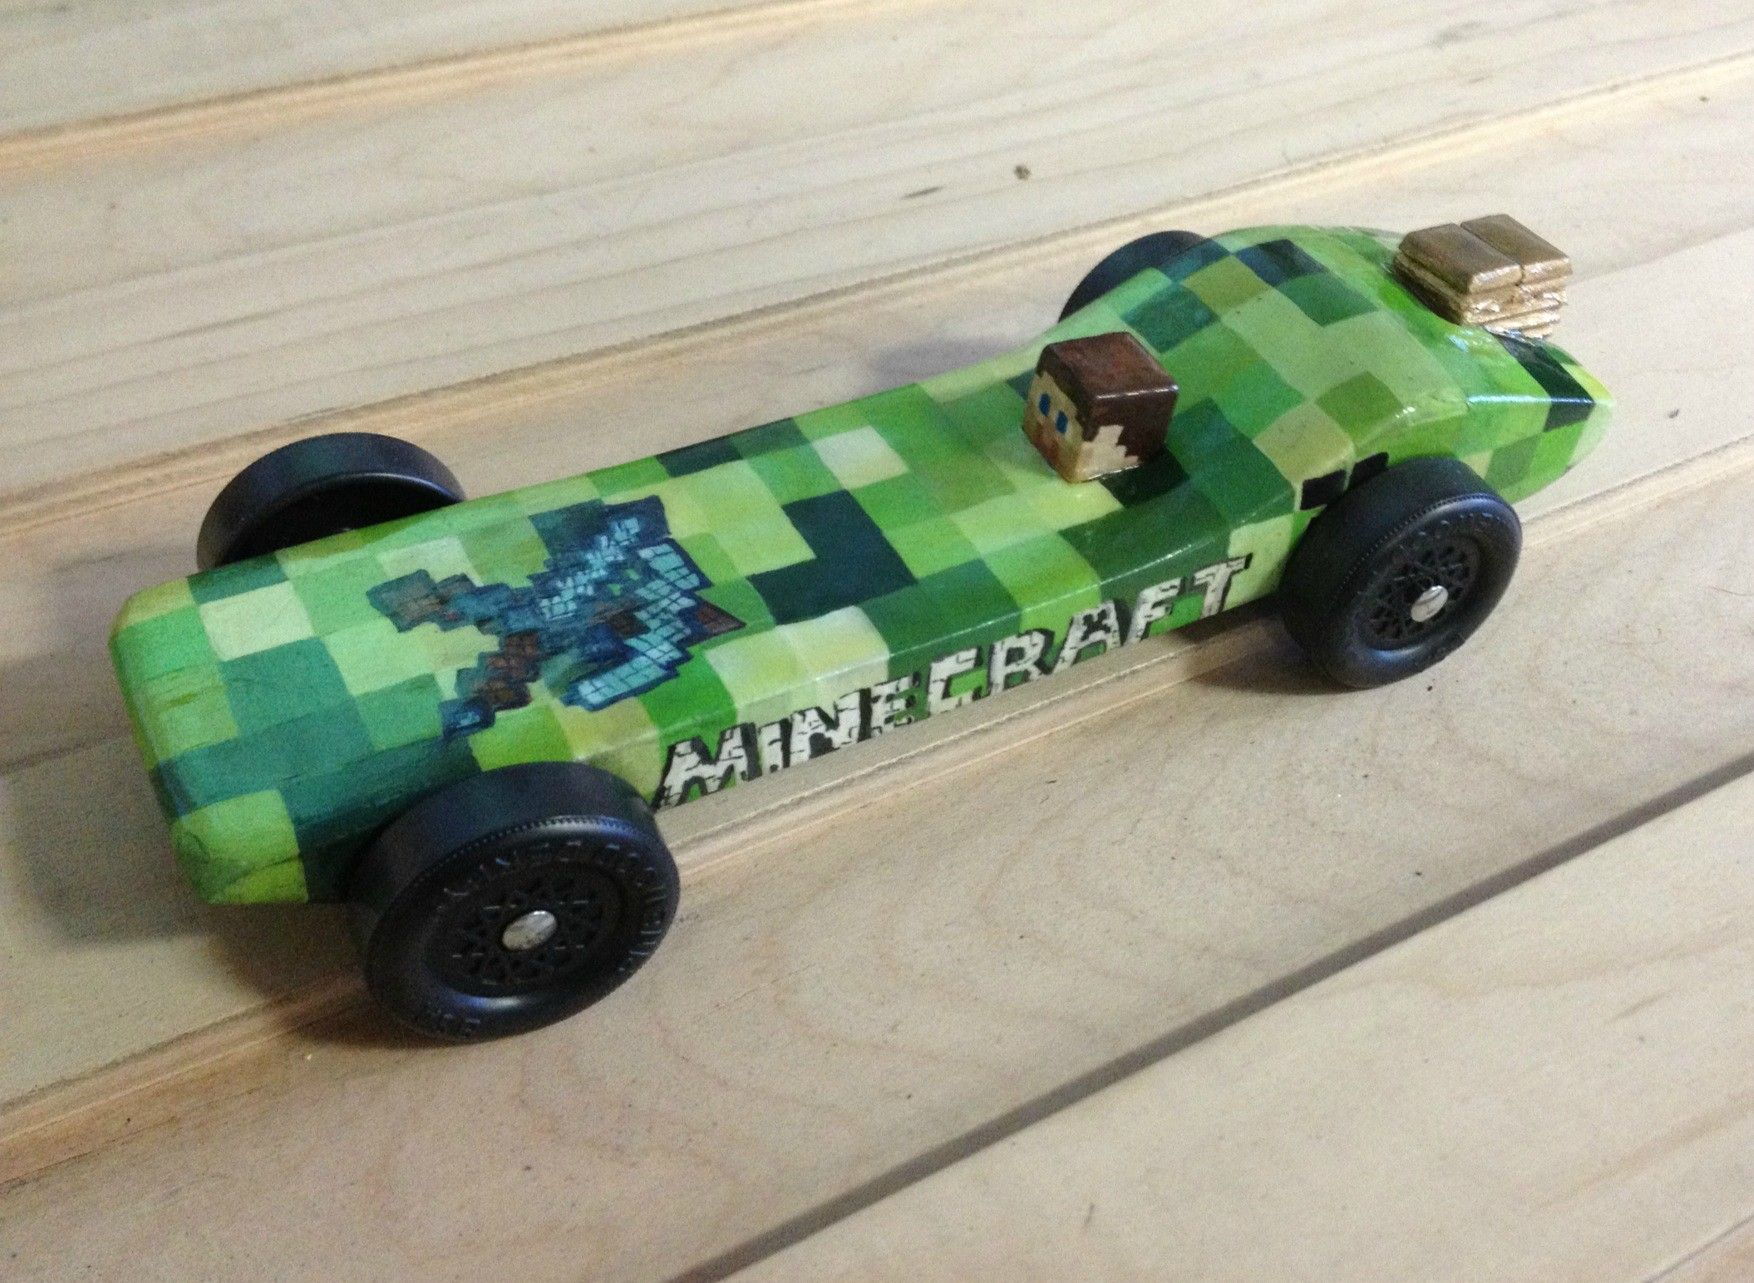 i see your stevie minecraft car and submit this one for your consideration cubscouts scoutingcubscouts loganpinewood derby - Pinewood Derby Car Design Ideas